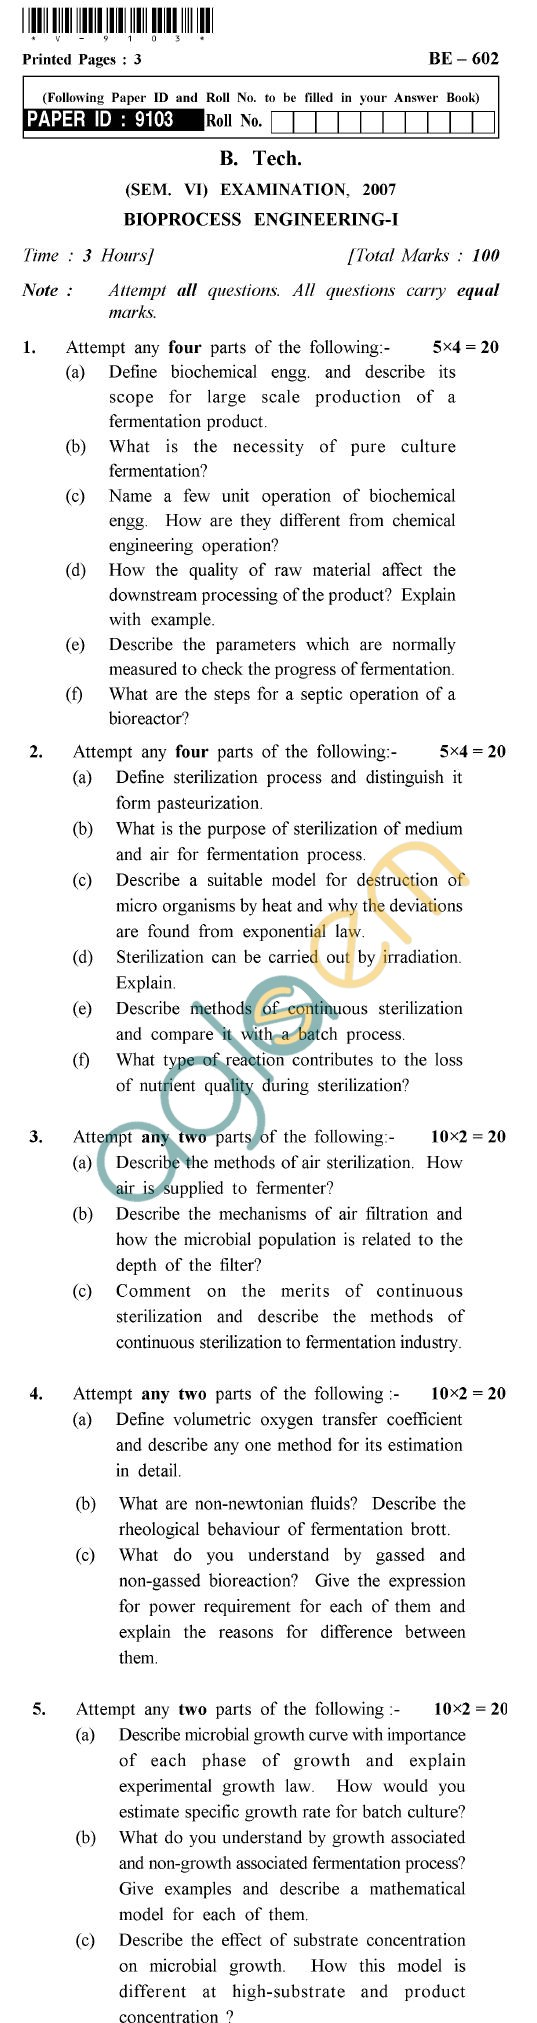 UPTU B.Tech Question Papers - BE-602 - Bioprocess Engineering-I